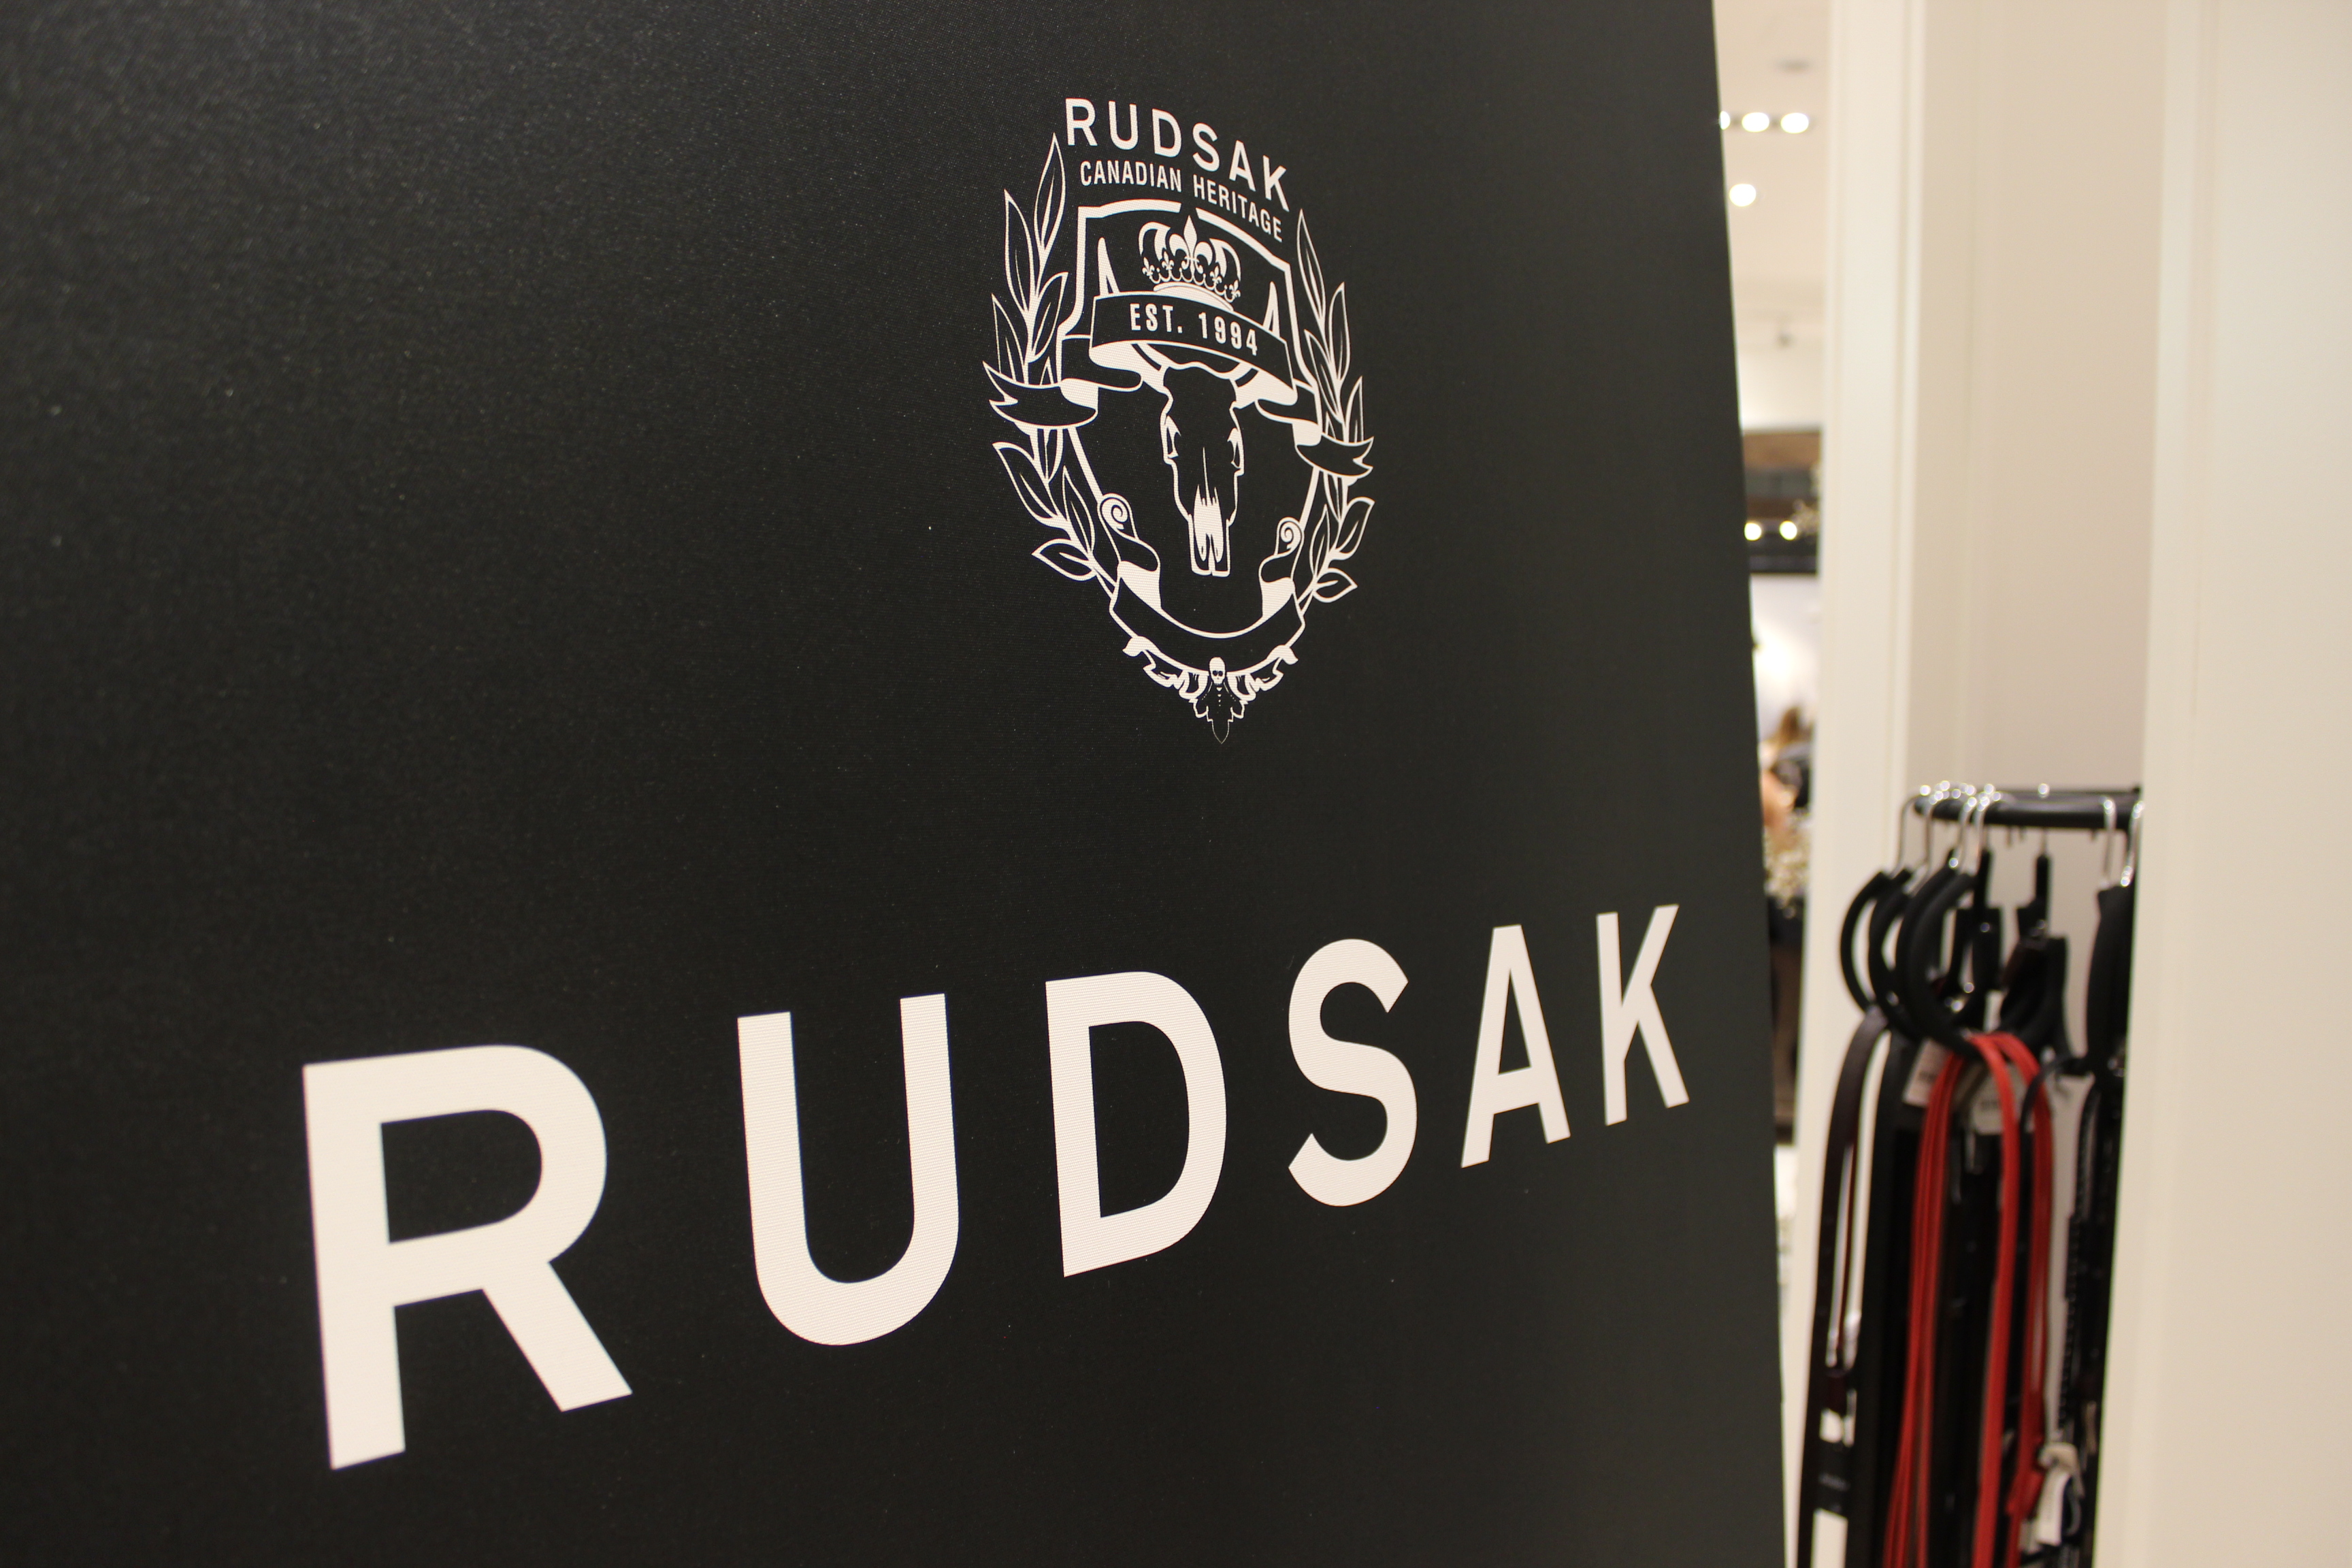 PR Event Rudsak store opening Laval Montreal Chantal Sarkisian Chantsy Mode XLusive Canadian Fashion Blog Blogger Ottawa Toronto RockRudsak Emily Haines Metric